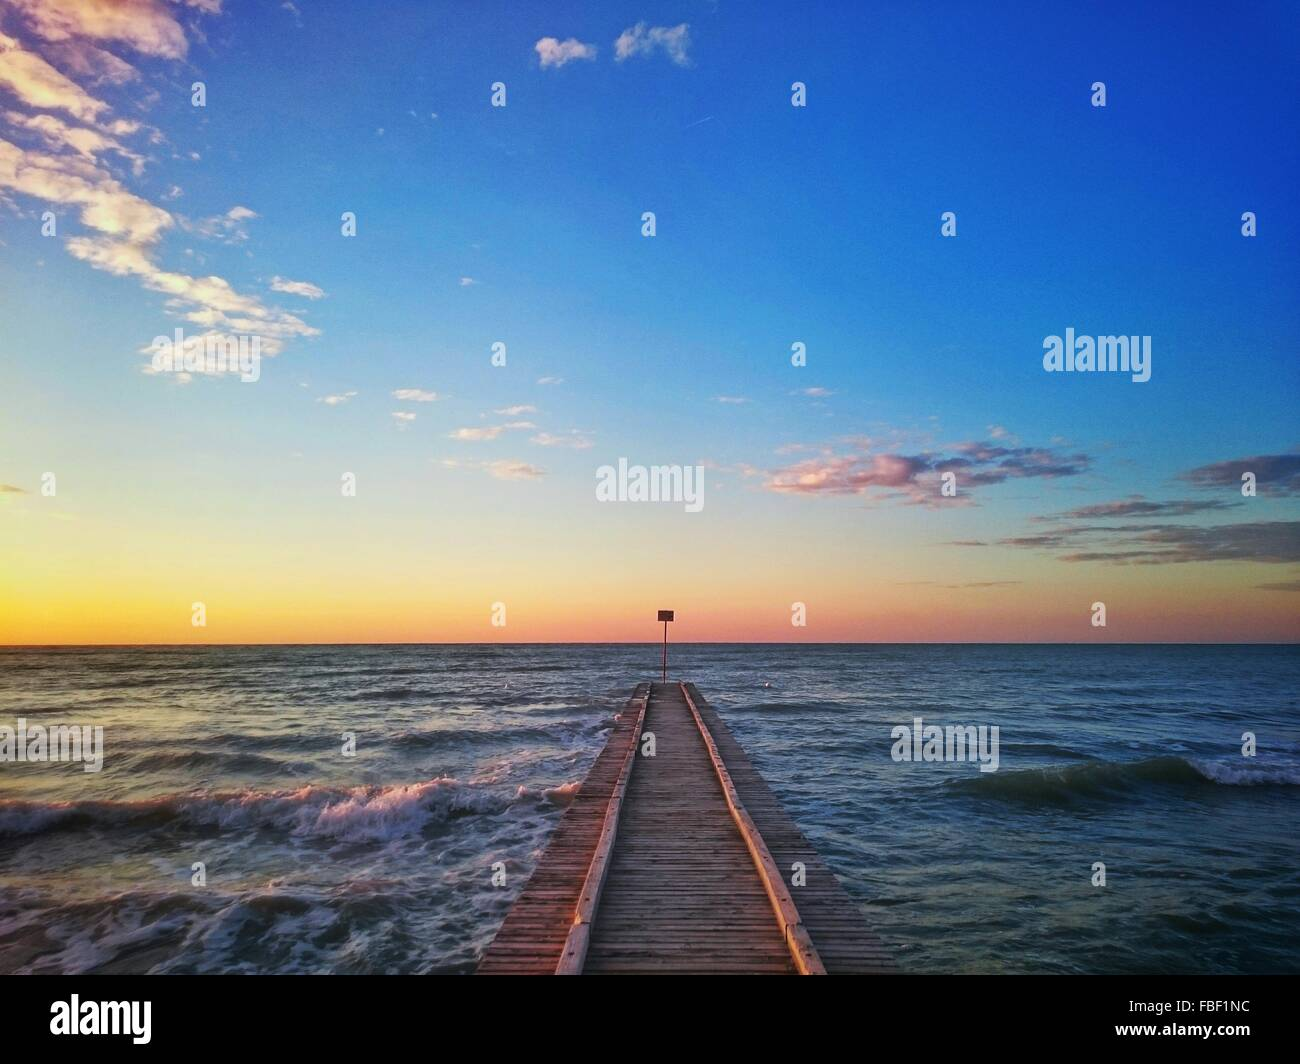 High Angle View Of Pier Over Sea Against Sky During Sunset - Stock Image